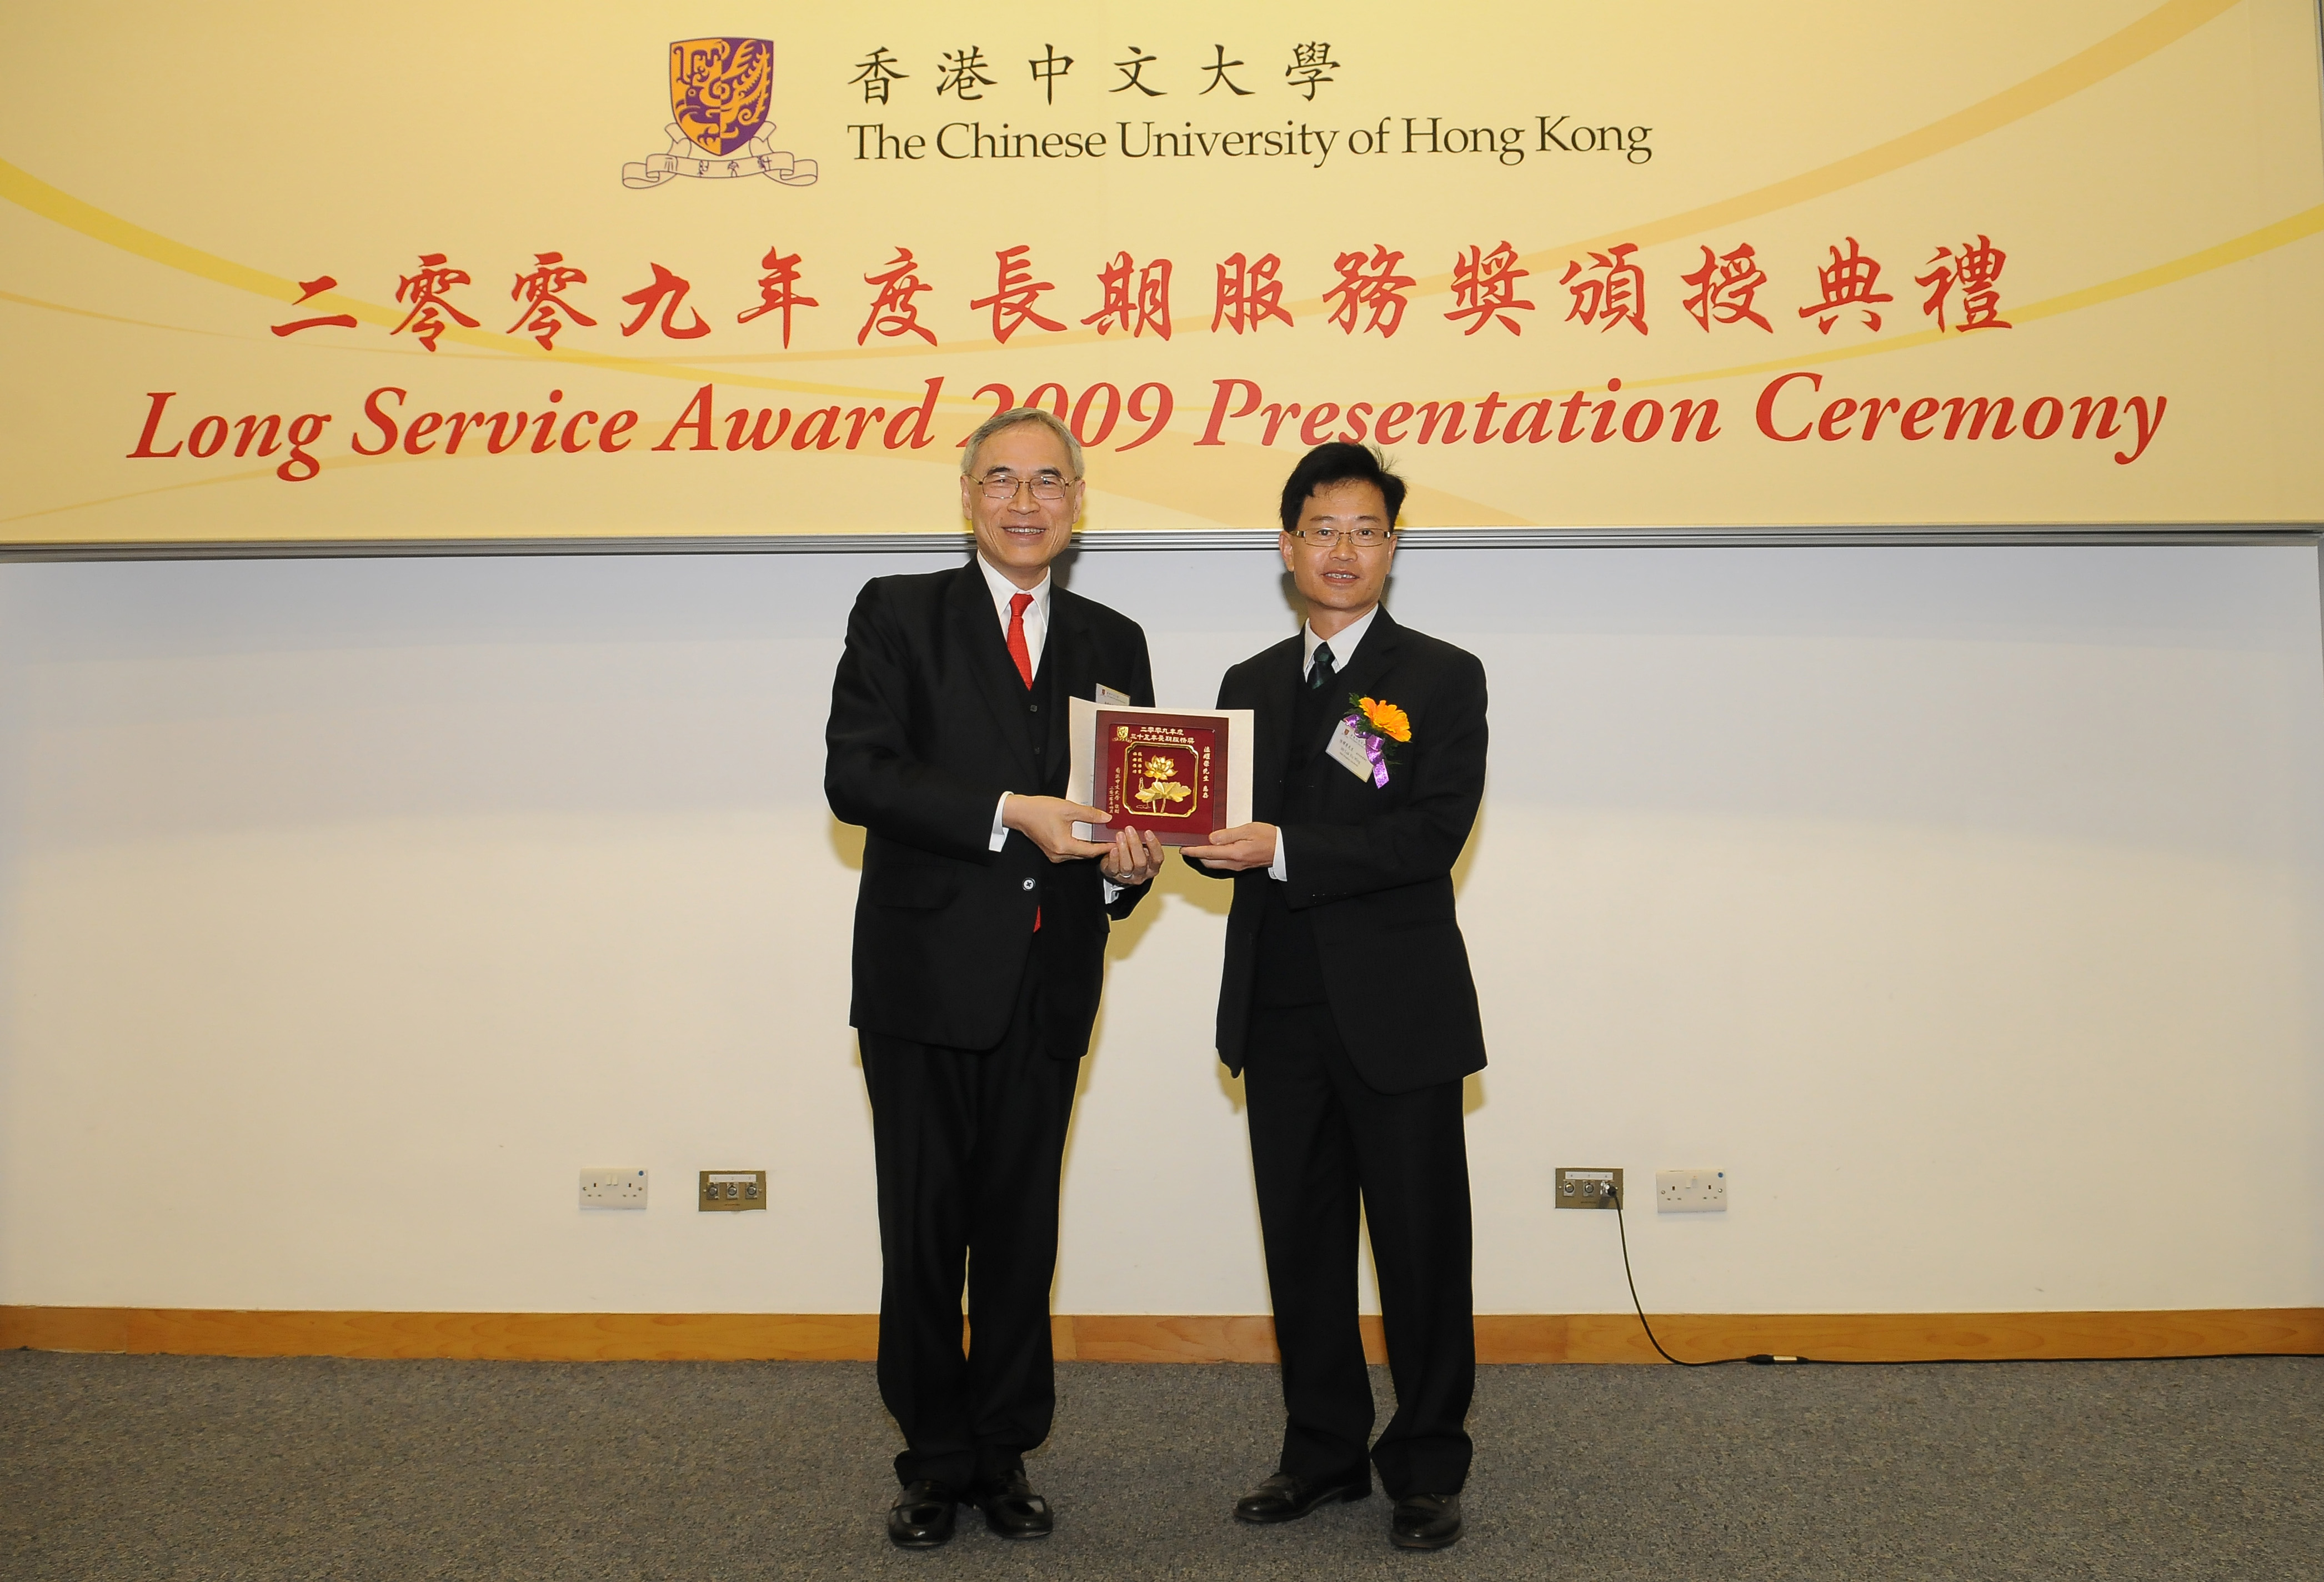 Prof. Lawrence J. Lau presents a certificate and a trophy to Mr. Luk Yiu-wing, recipient of 35-year Long Service Award